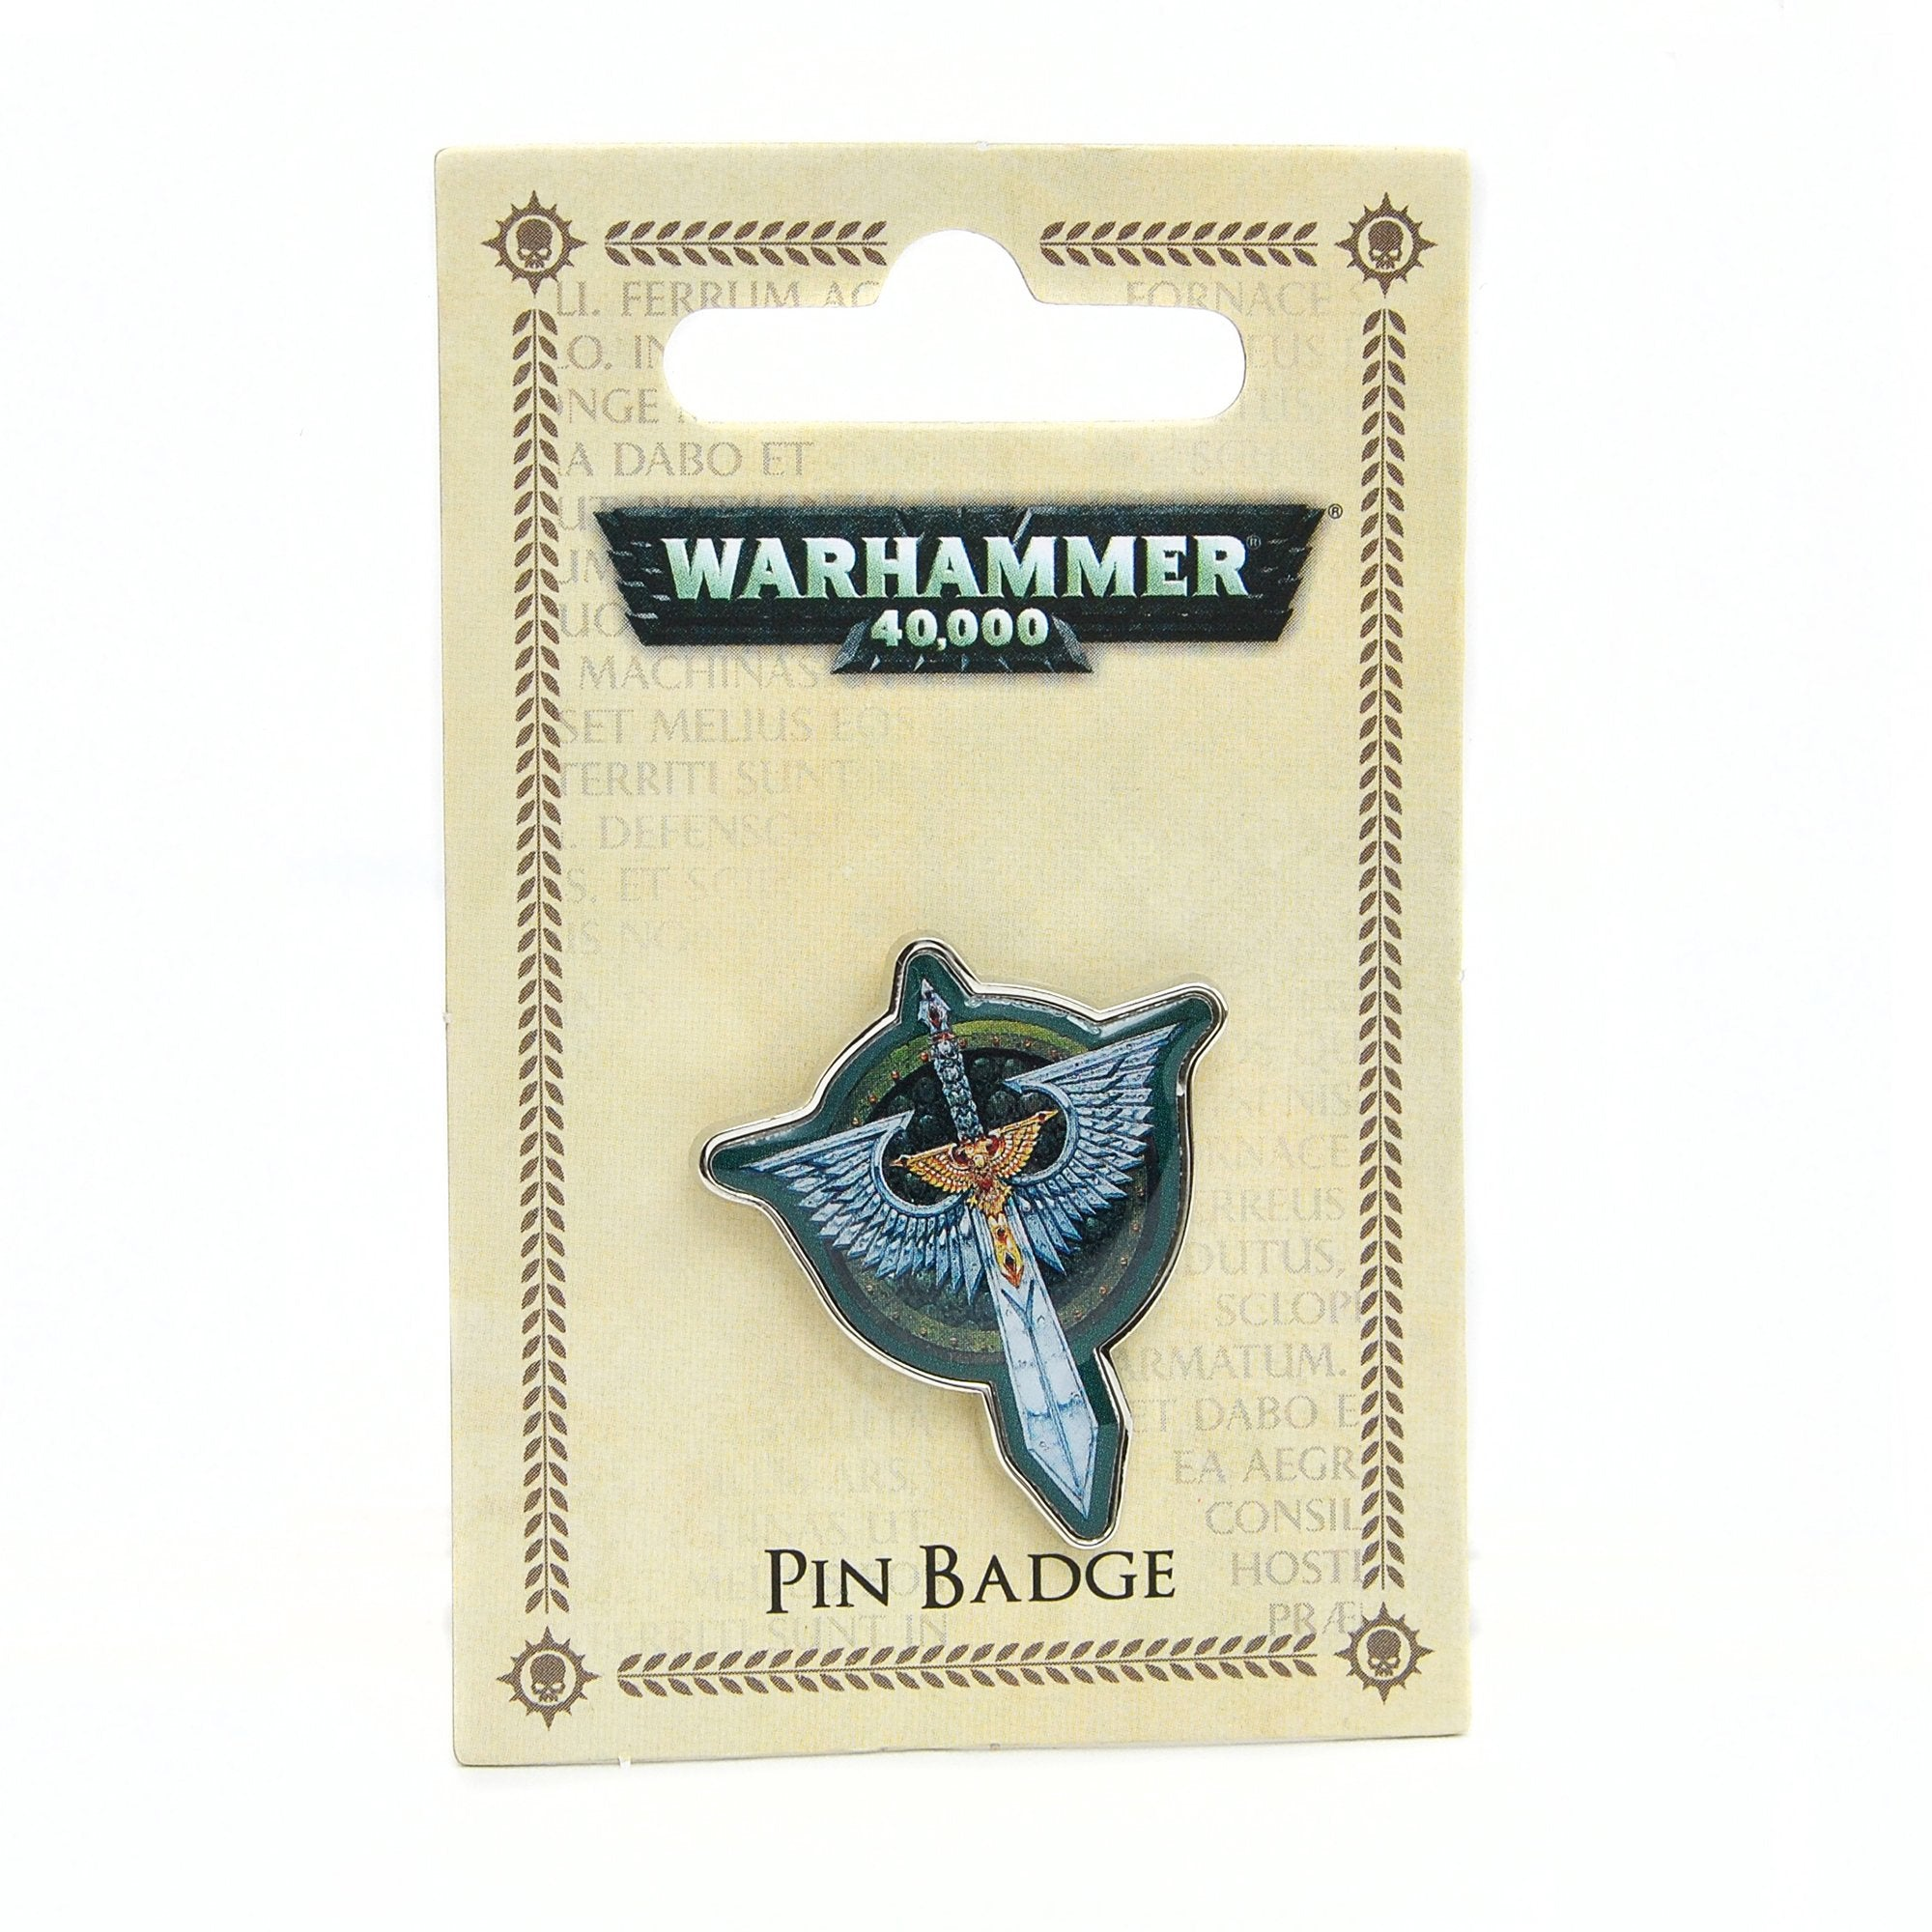 Warhammer 40,000 Pin Badge - Dark Angels - Half Moon Bay US